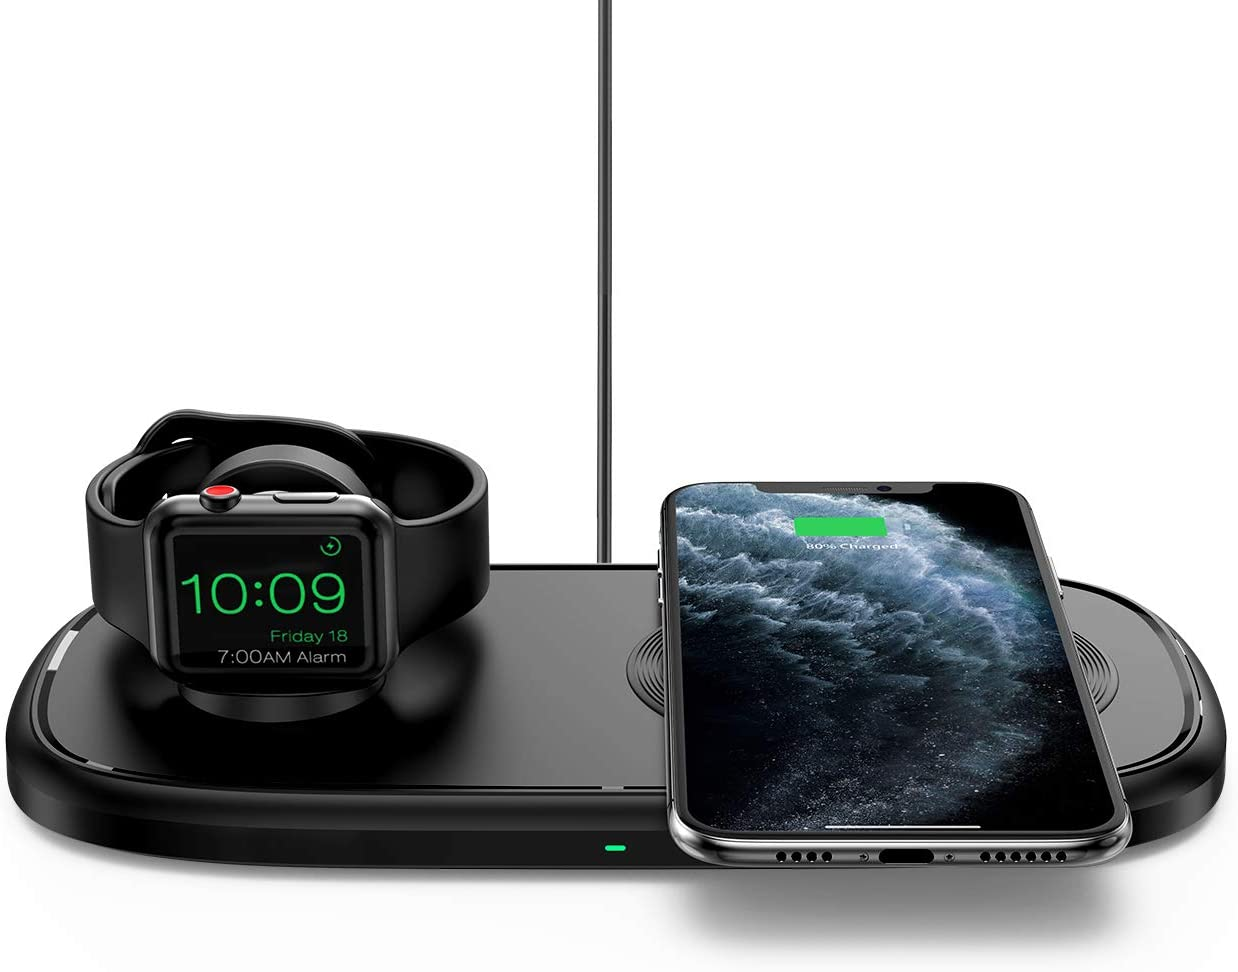 iSeneo 2 in 1 Wireless Charger, Dual Wireless Charging Pad - Charging Holder for iWatch 6/SE/5/4/3/2, 7.5W Fast Charging for iPhone 12/SE 2/11/11 Pro Max/XR/XS/X/8/8P, Dark Black(No QC 3.0 Adapter)